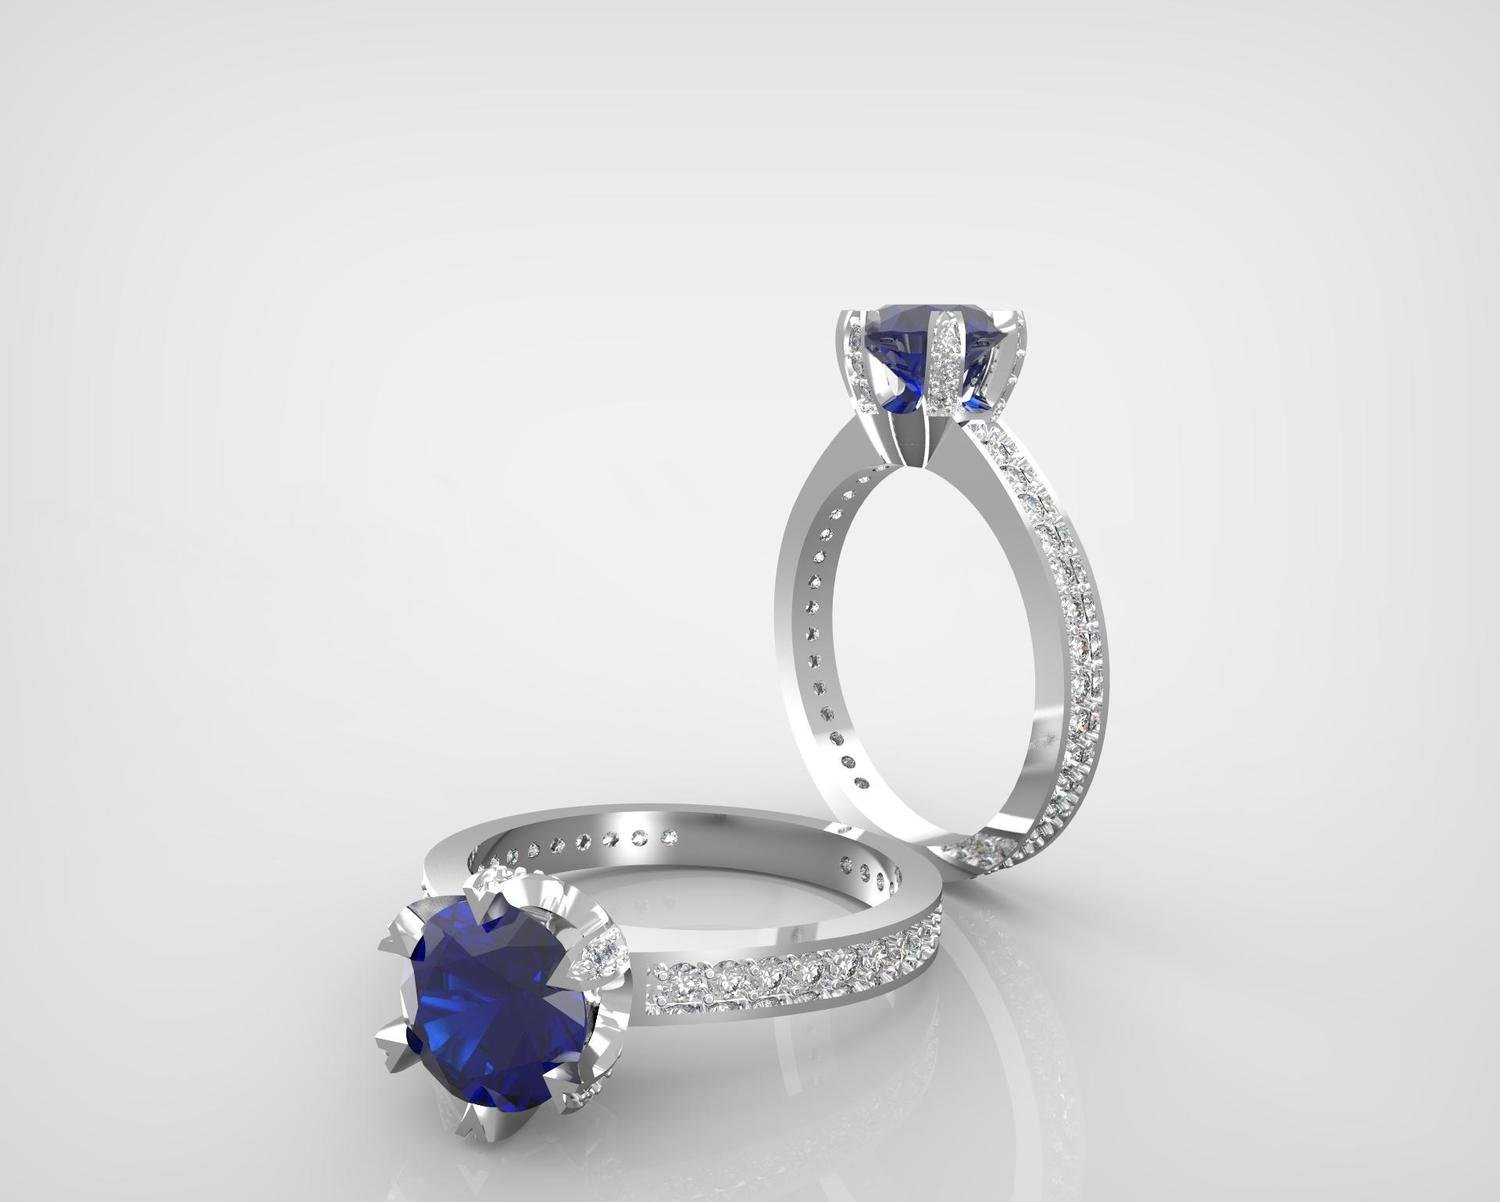 3D CAD model of Engagement ring with diamonds